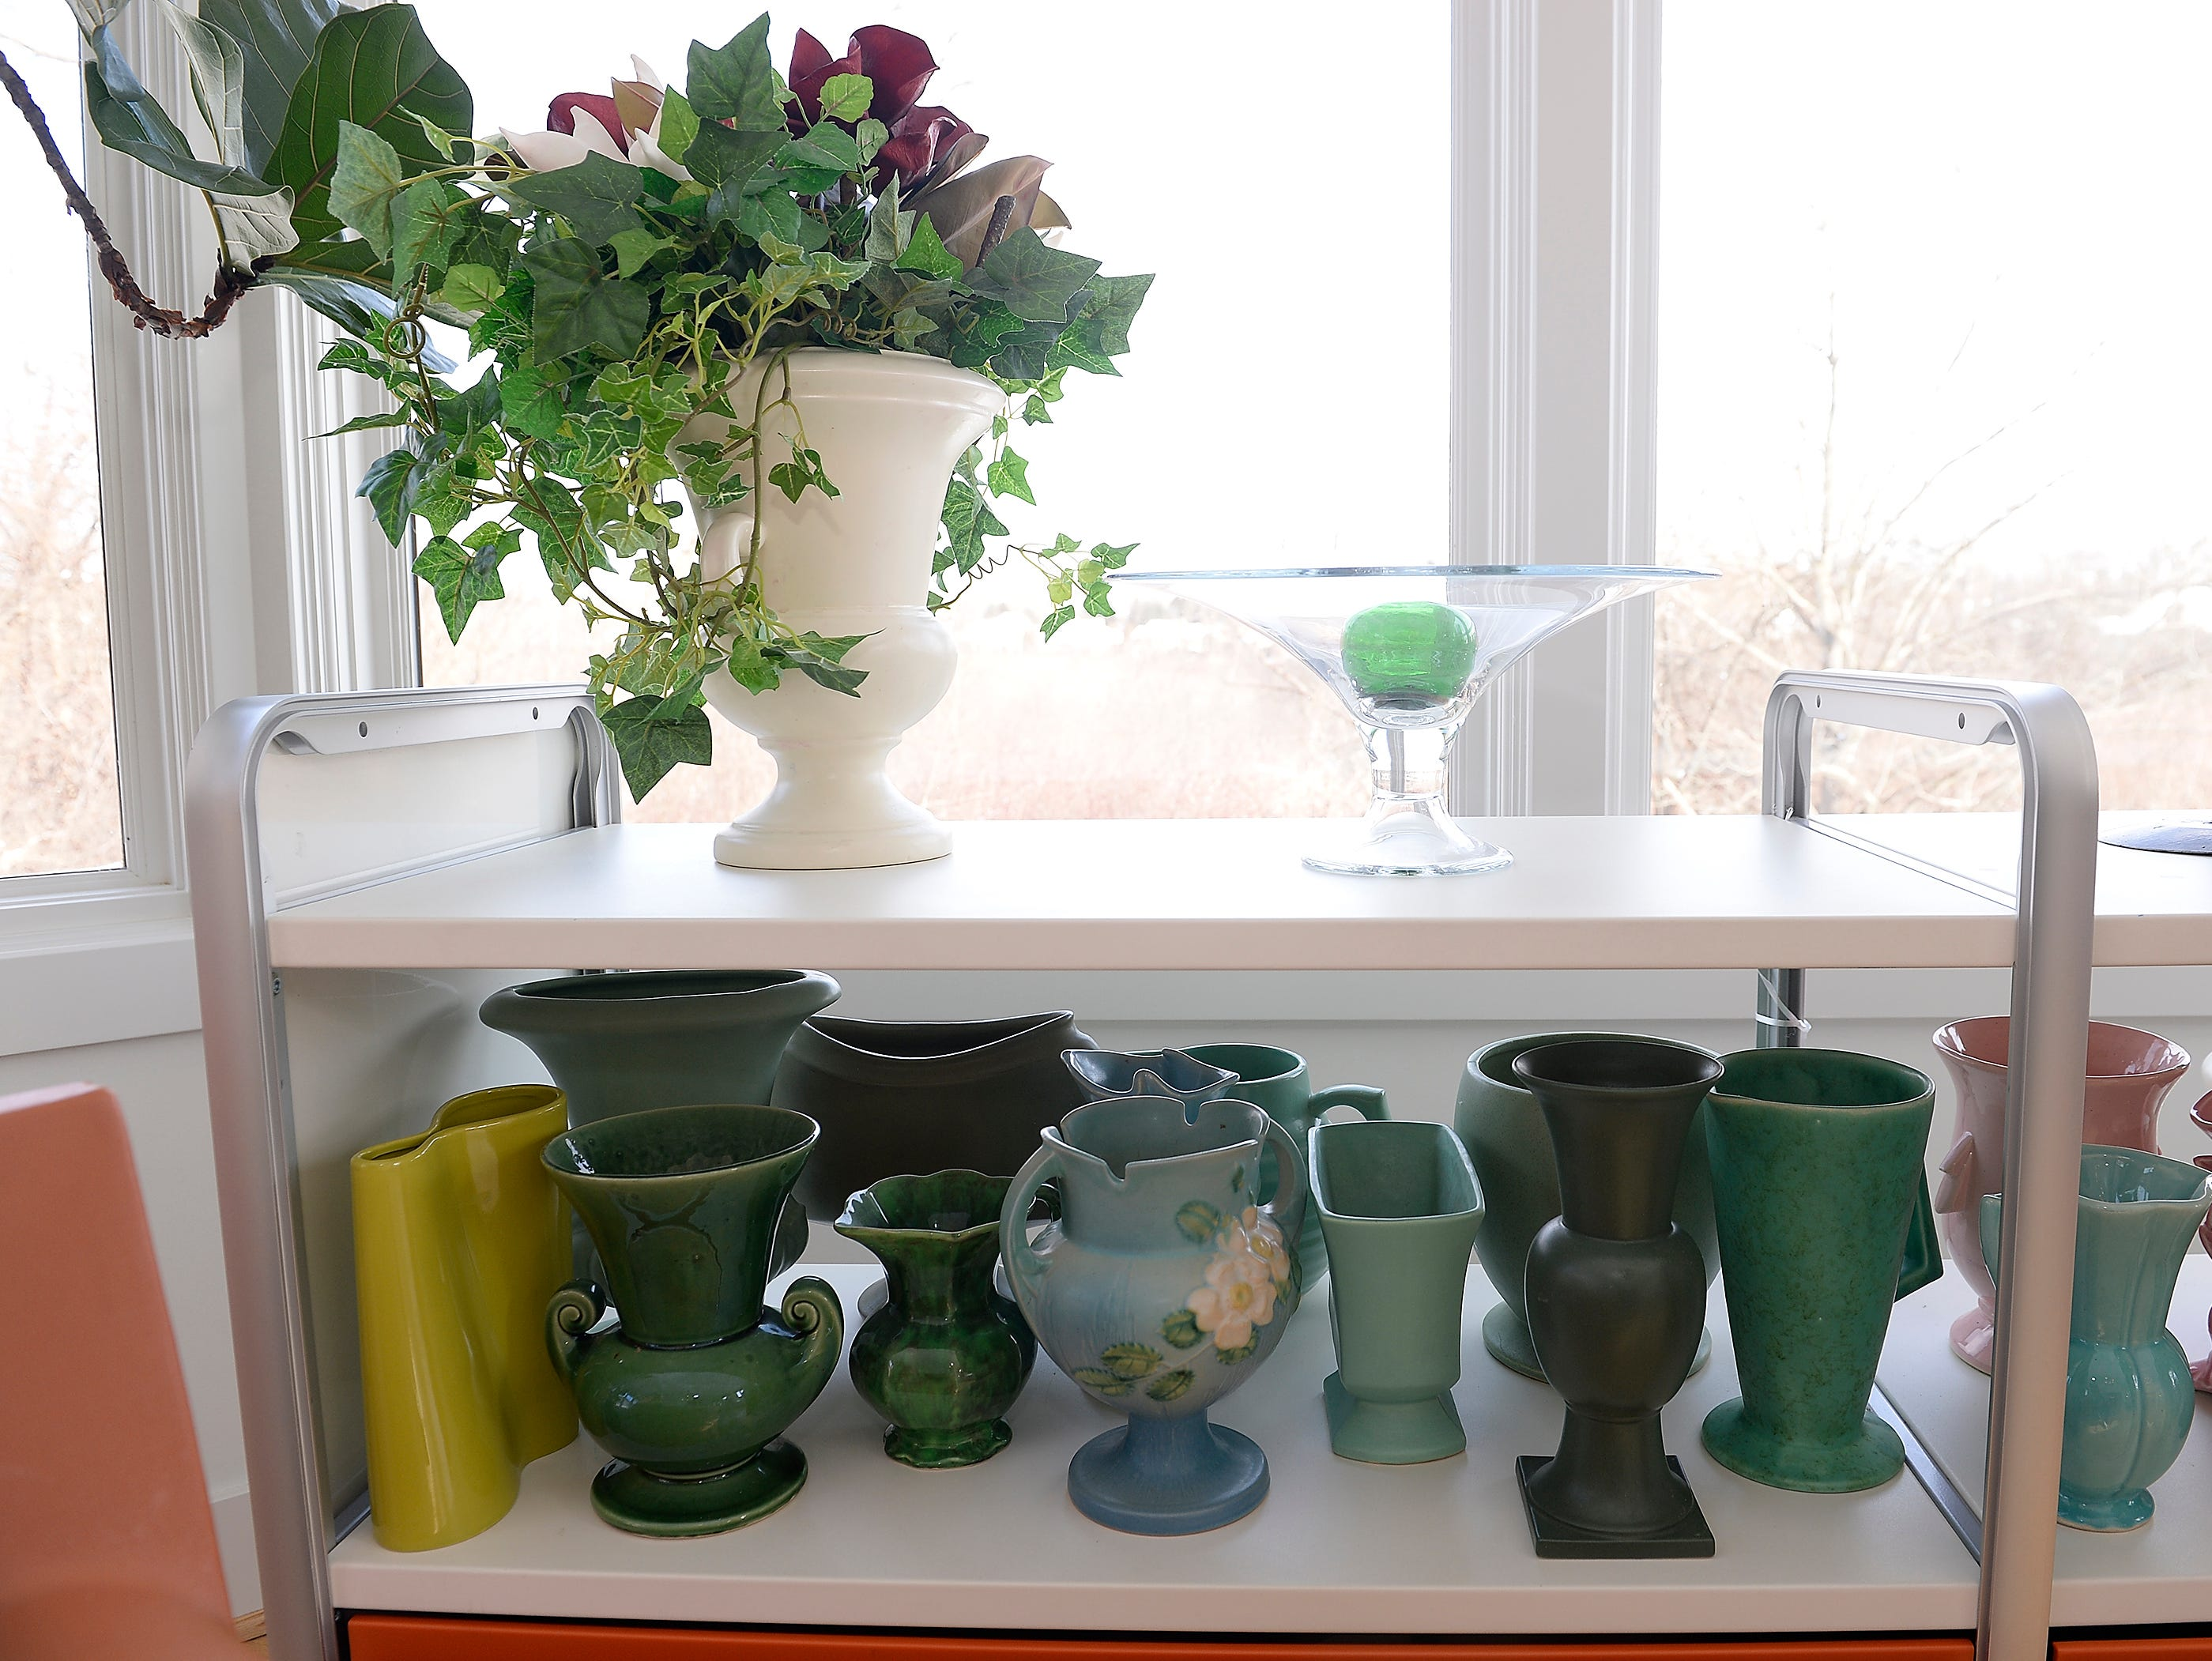 Mid-Century pottery sits on a window shelf inside the conservatory room.